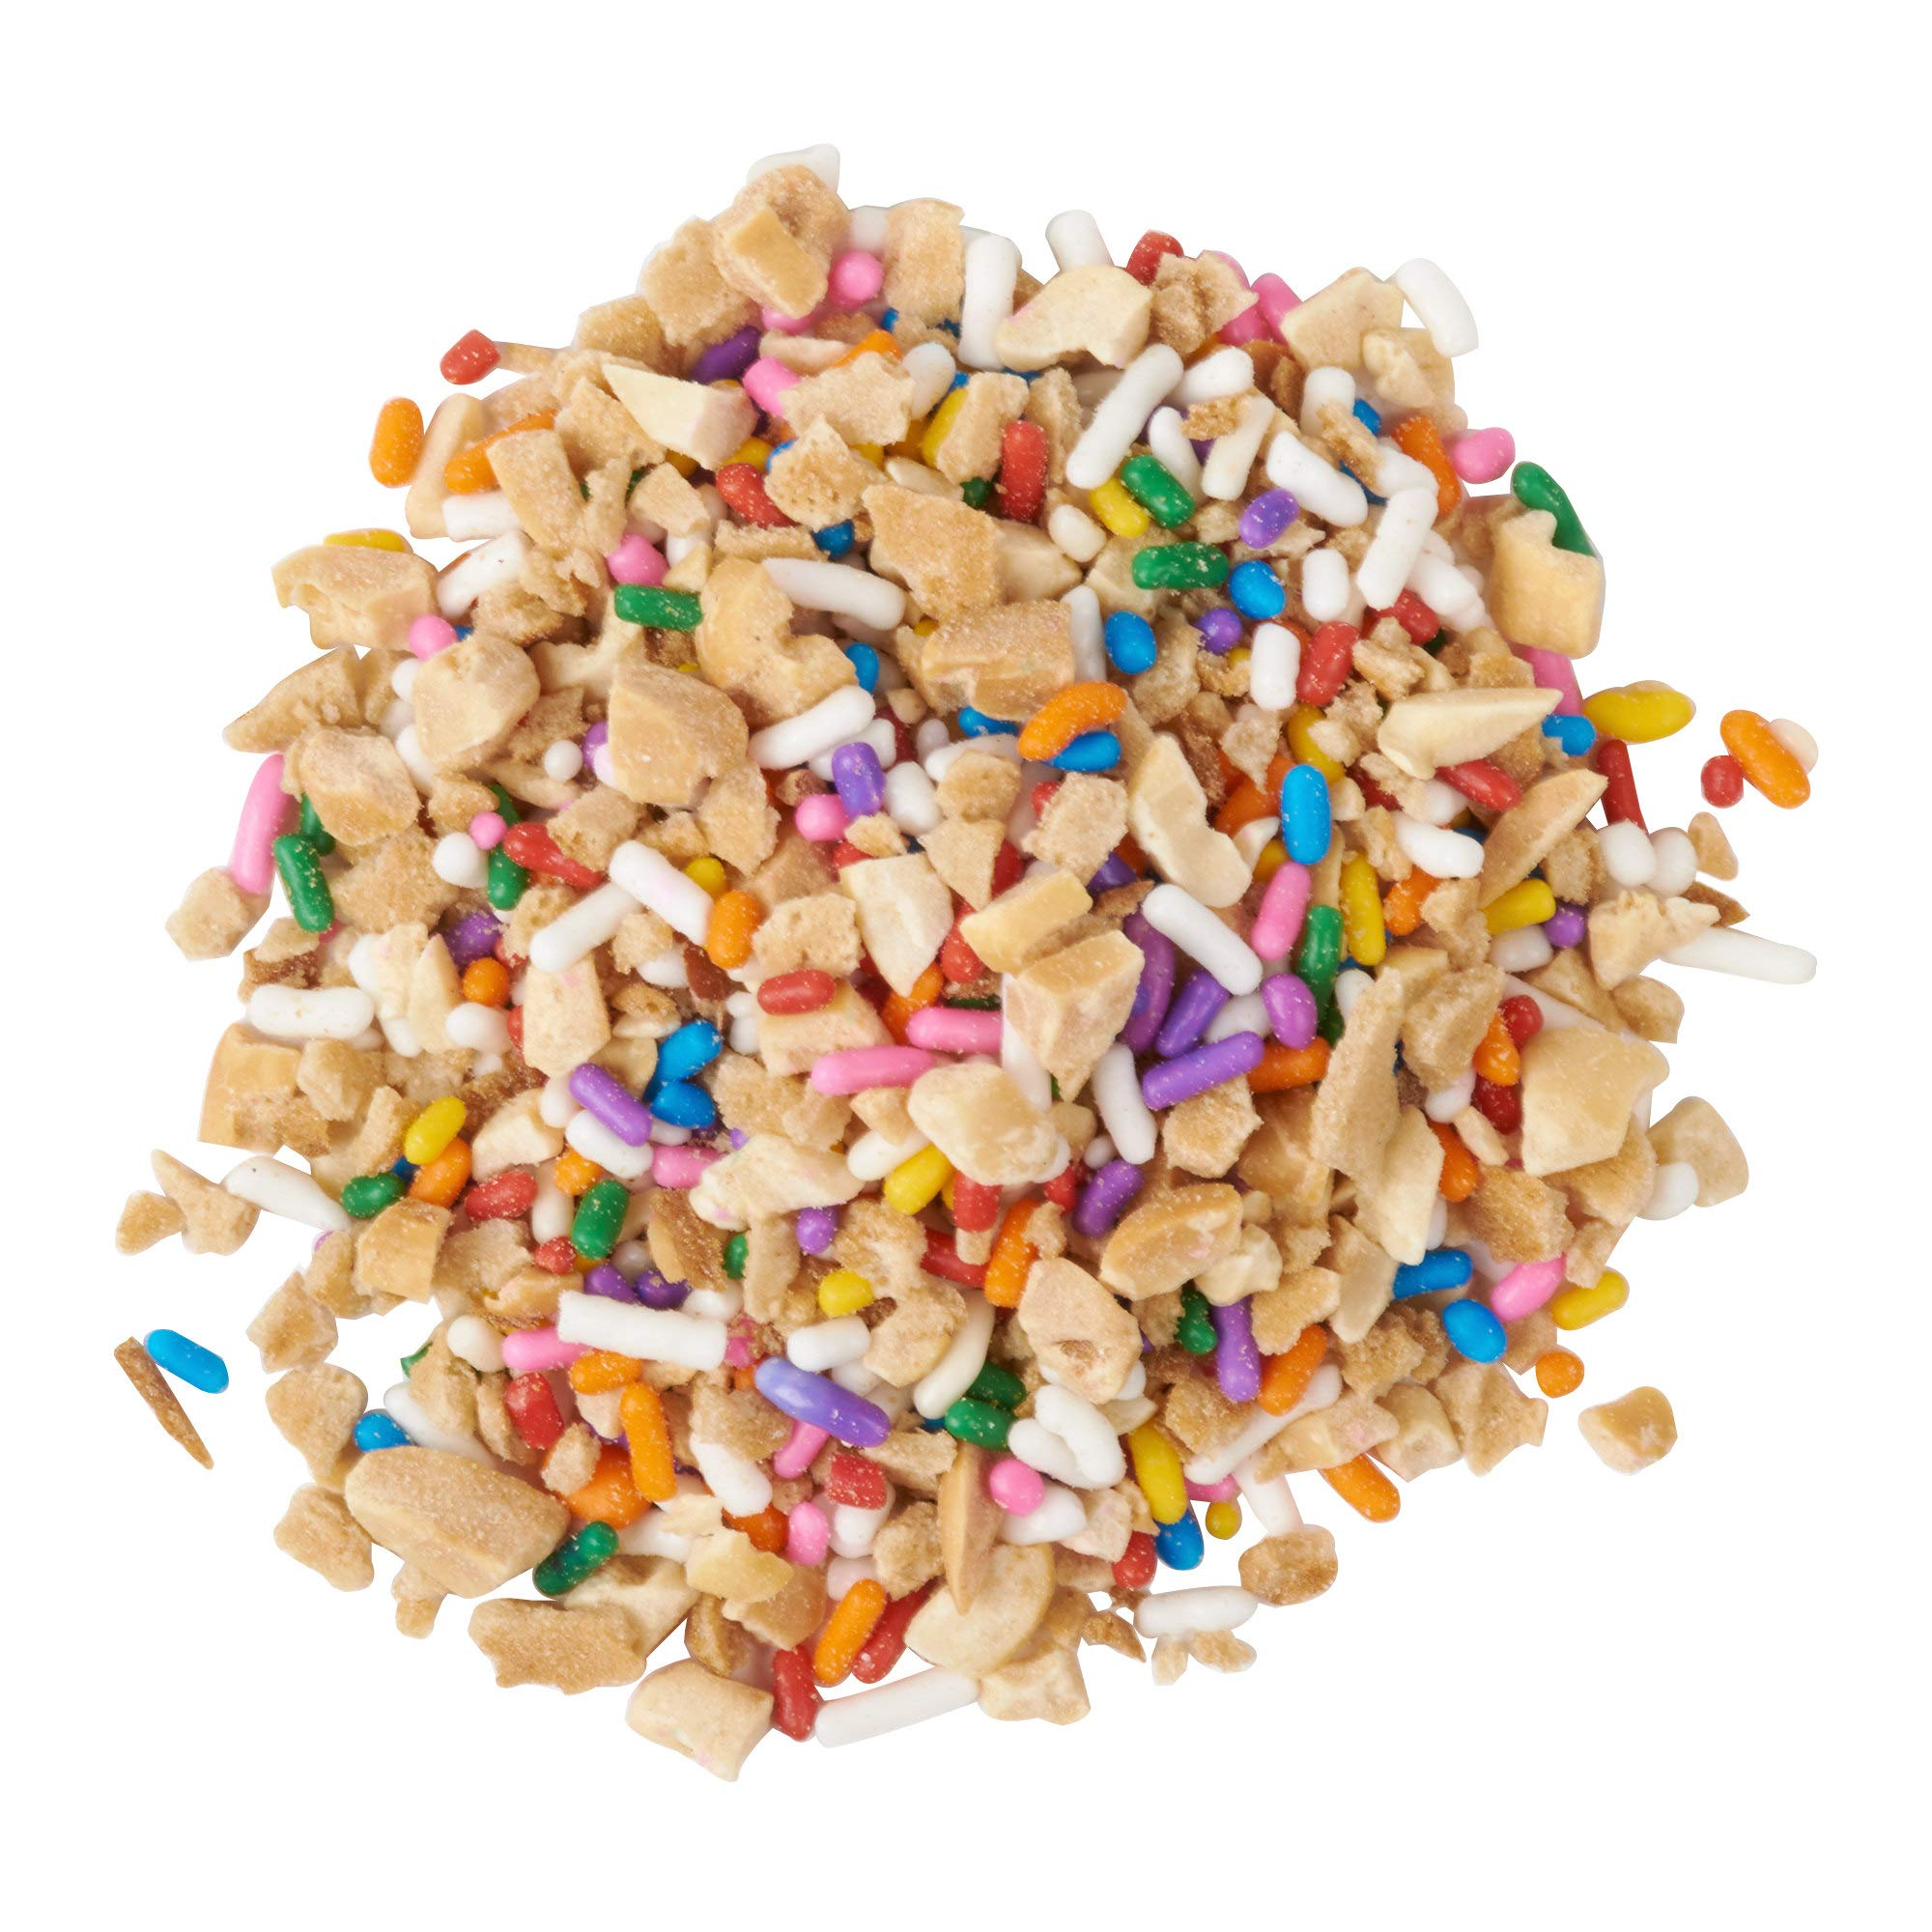 TableTop King Dutch Treat Twinkle Nut Crunch Candy Ice Cream Topping - 10 lb. by TableTop King (Image #2)